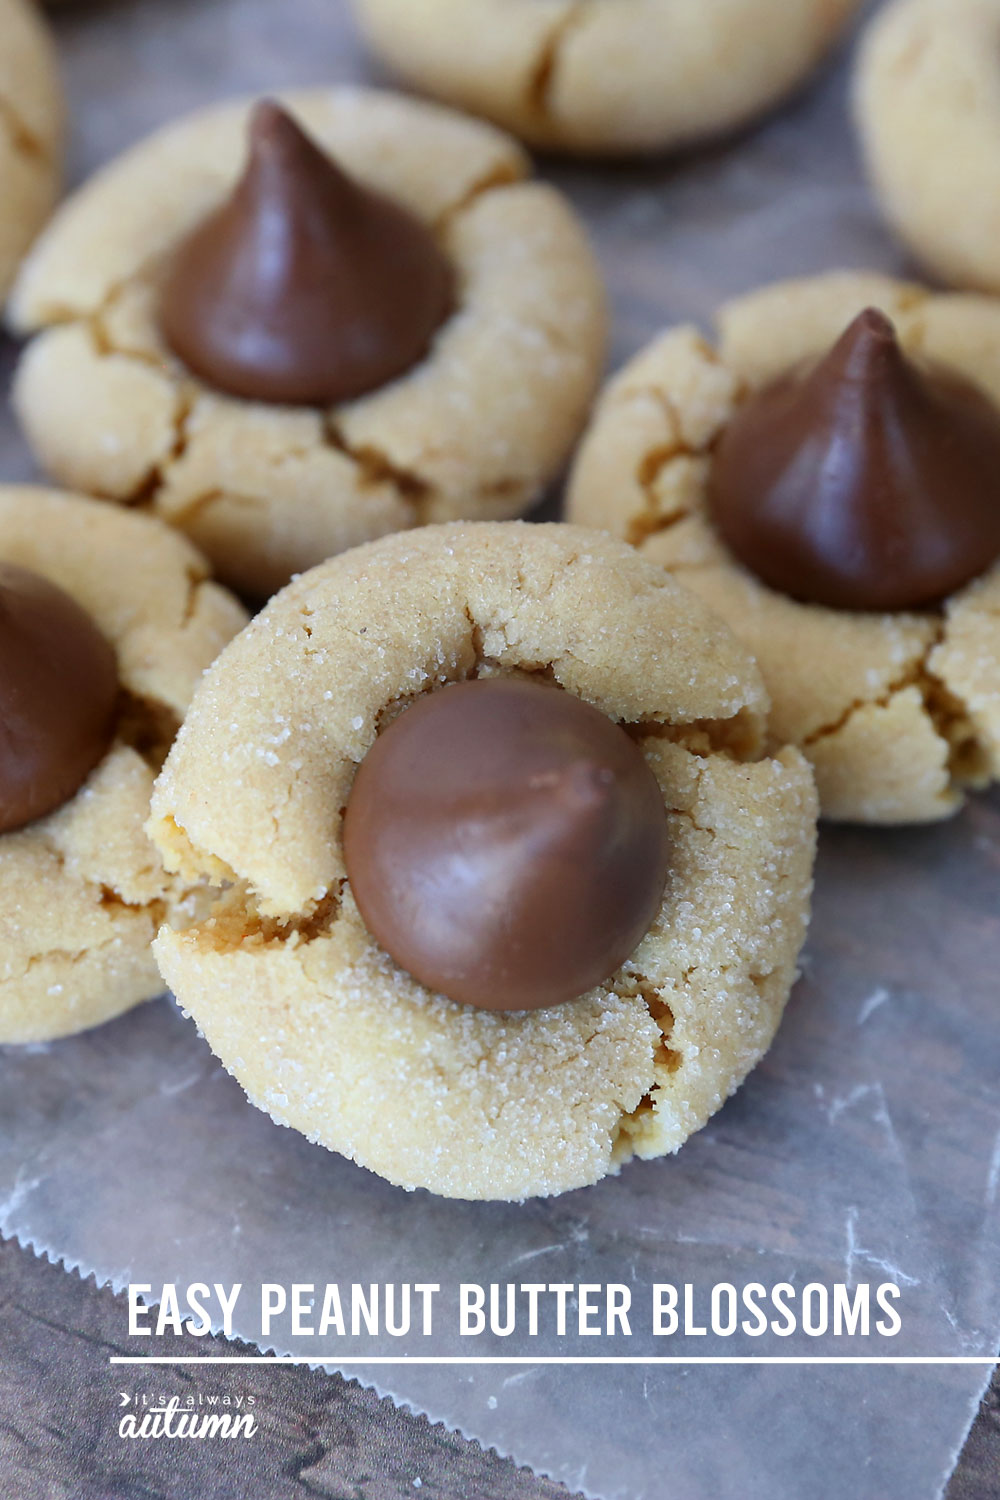 Peanut butter blossoms: peanut butter cookies with a Hershey kiss pressed in the middle